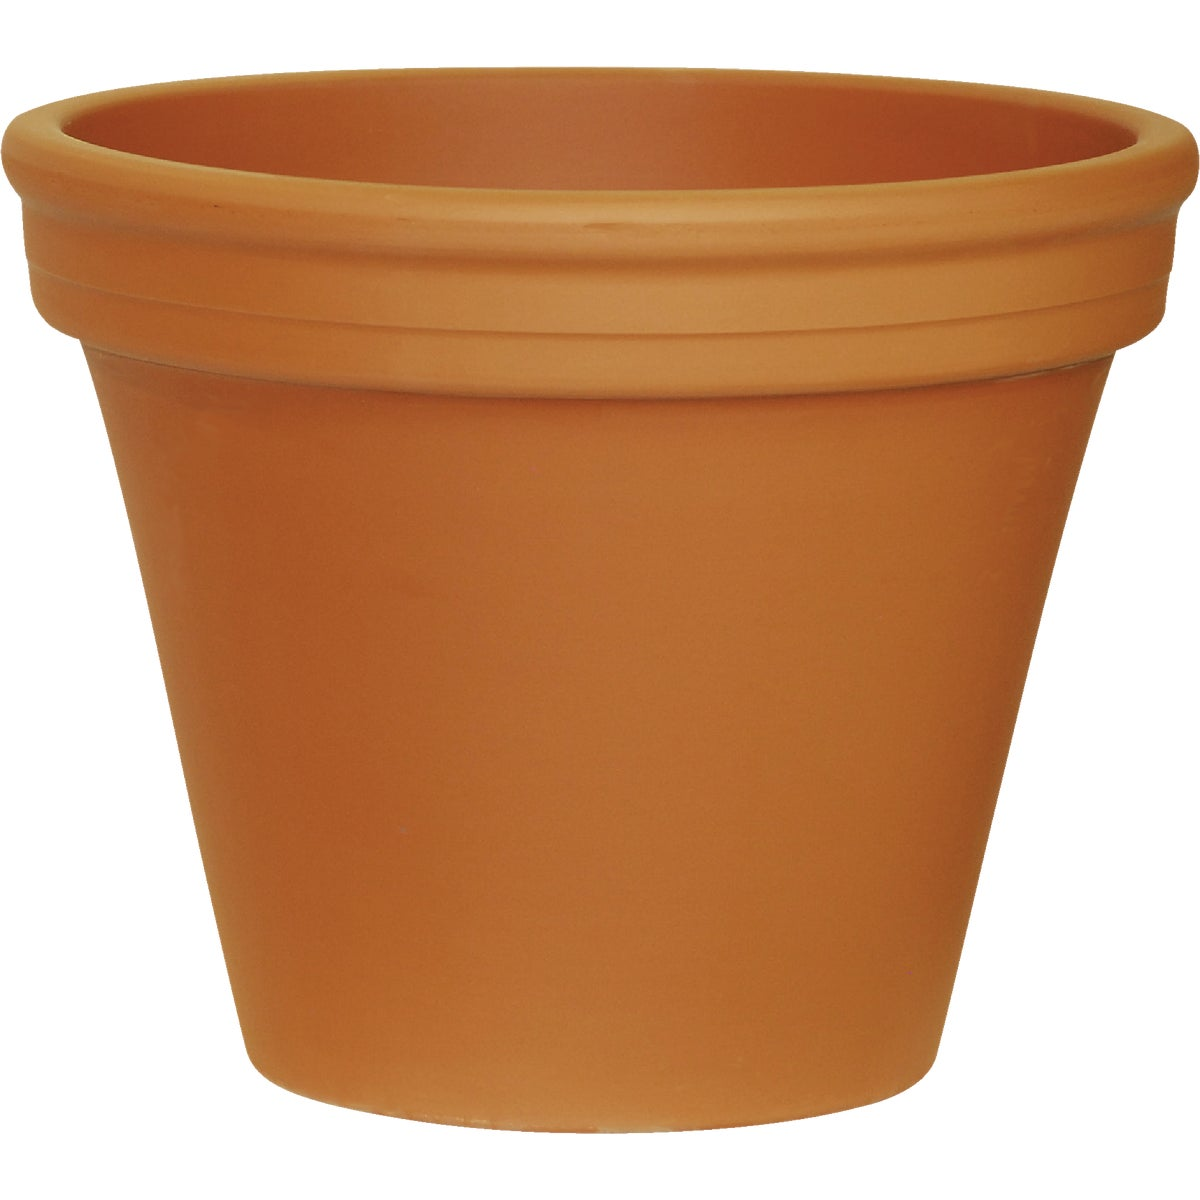 "10"" TERRA COTTA CLAY POT - 01270FZ by Deroma"